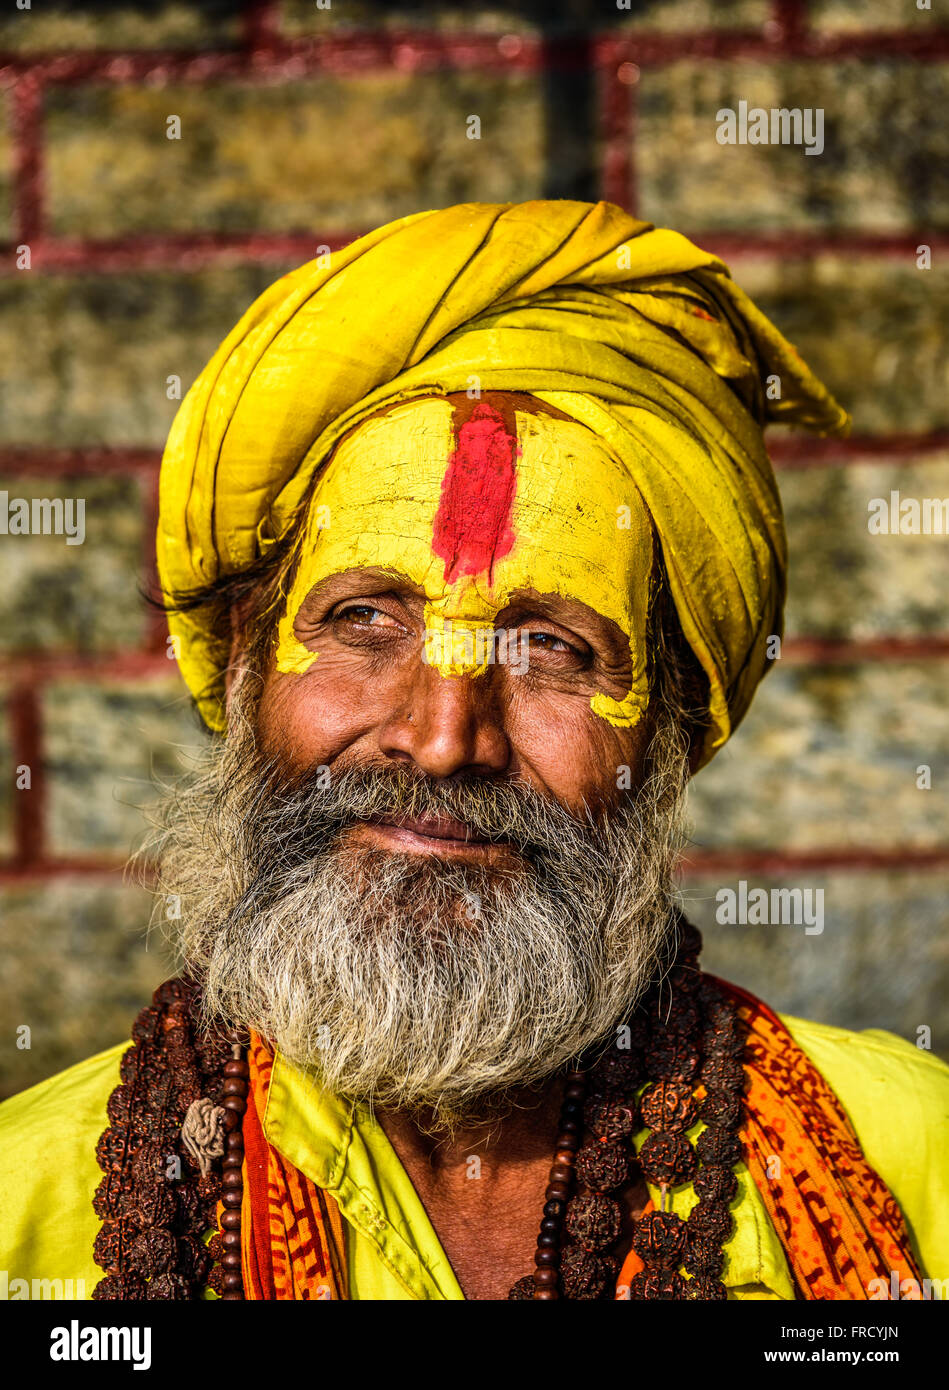 Portrait of sadhu baba (holy man) with yellow face painting in ancient Pashupatinath Temple - Stock Image